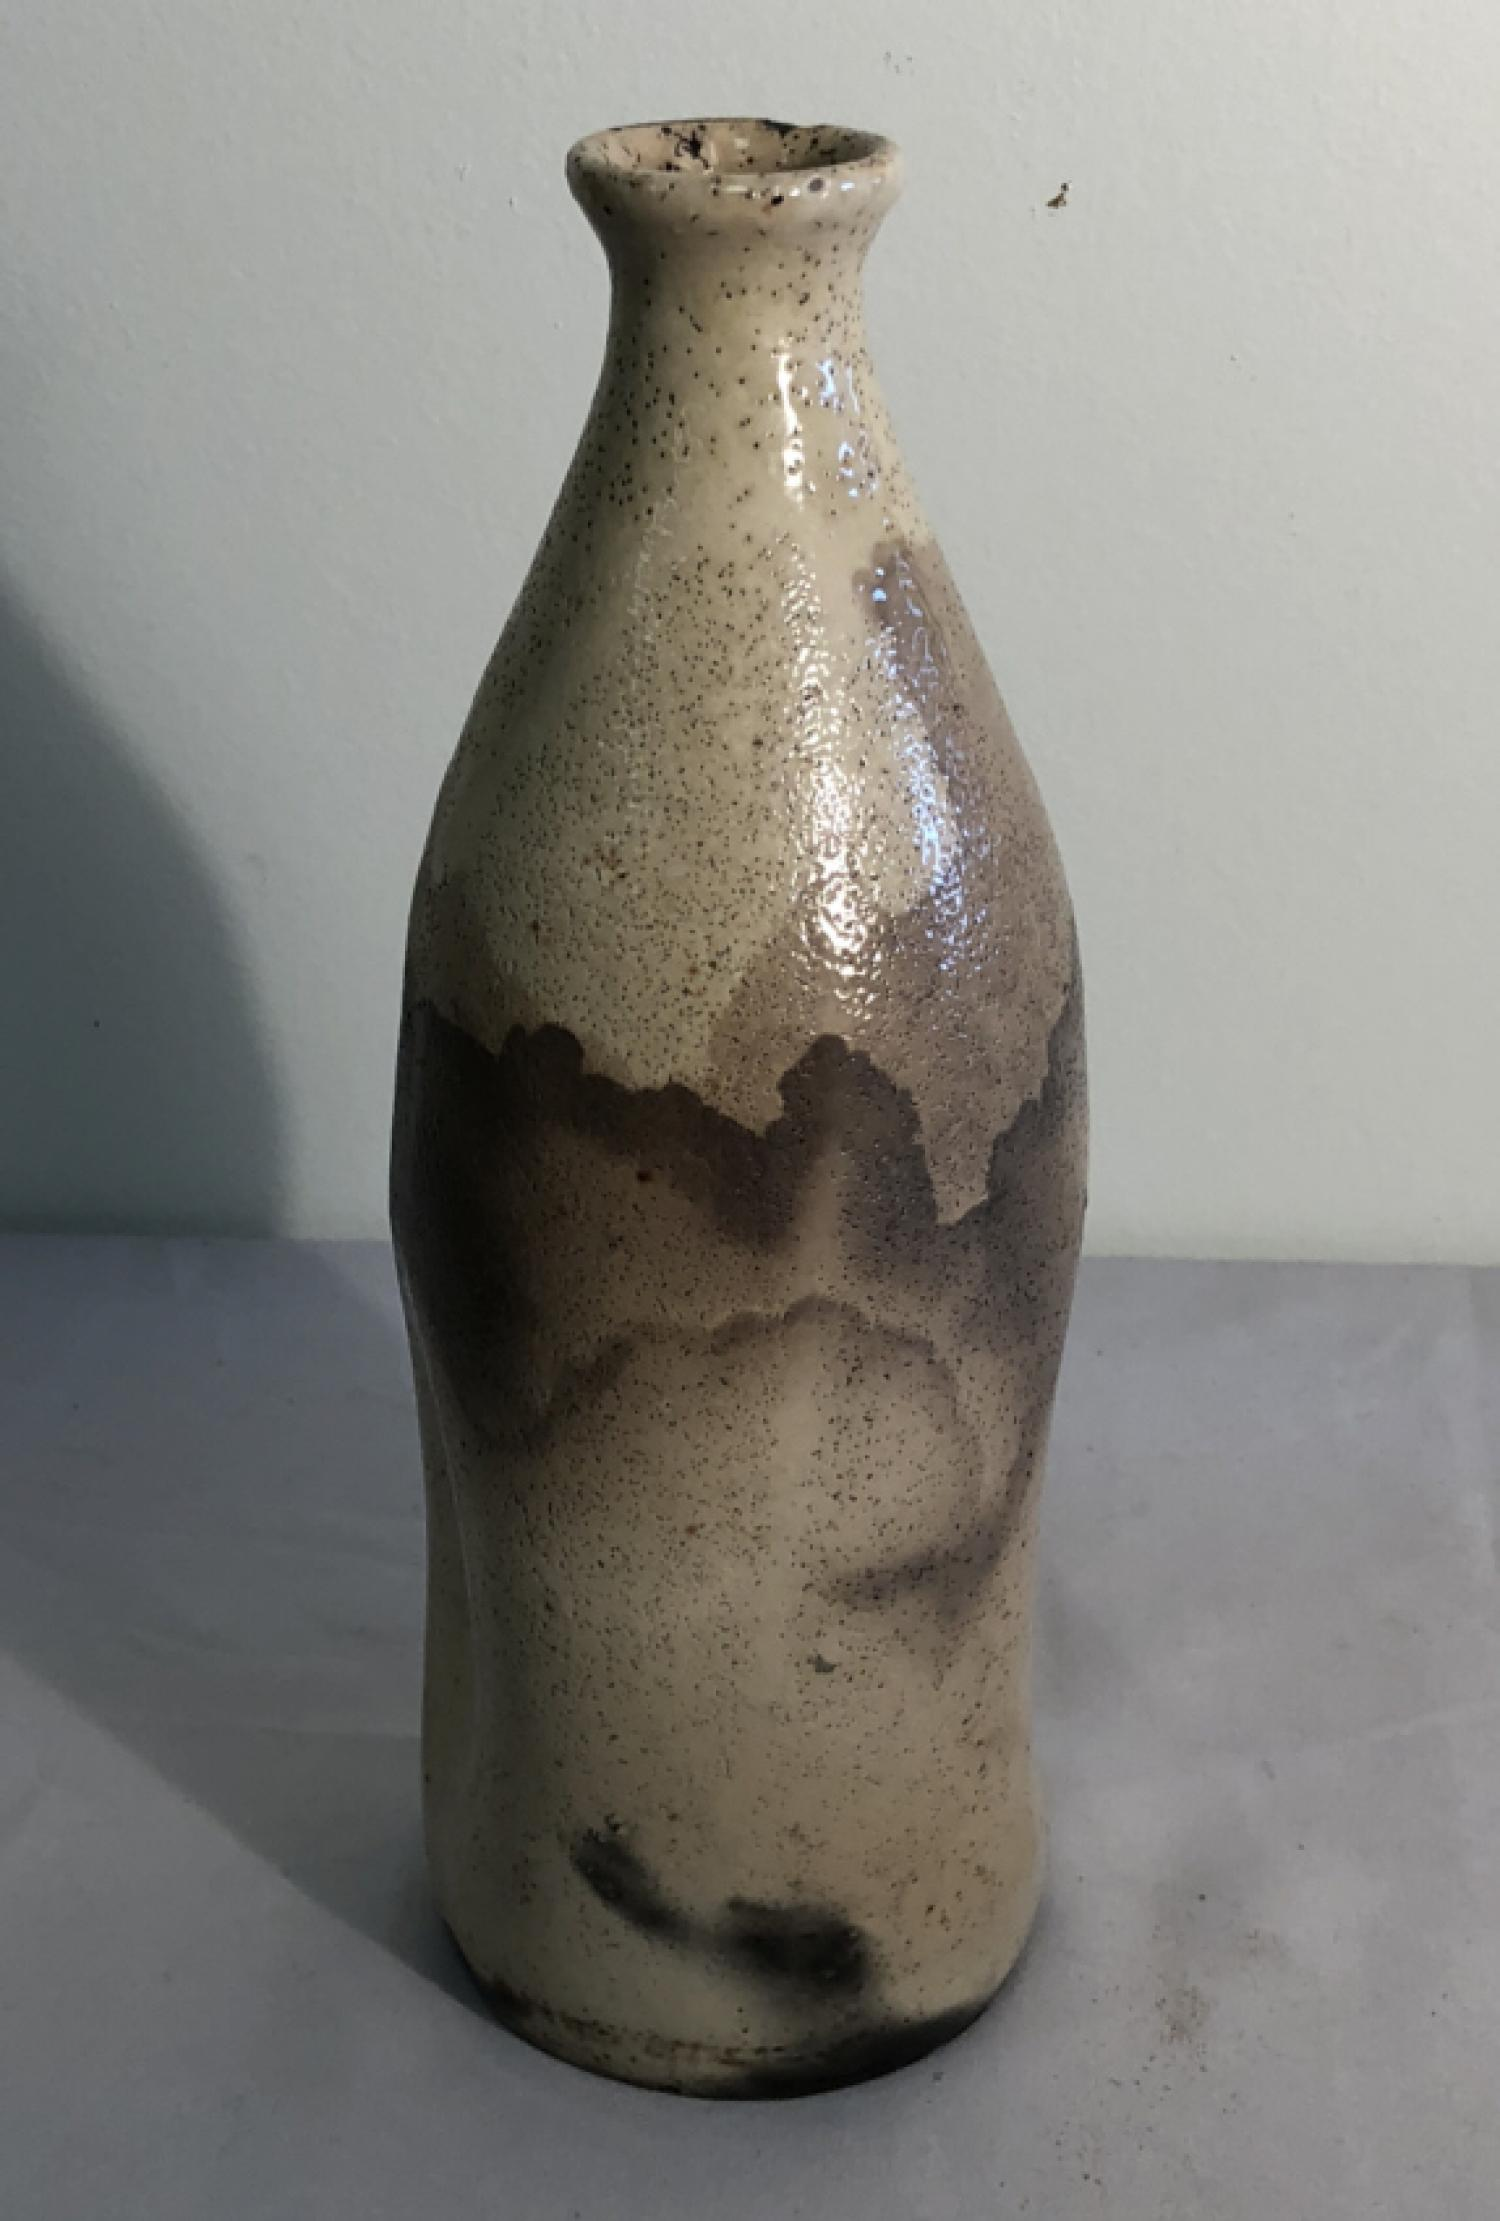 19th c Japanese sake bottle with calligraphy